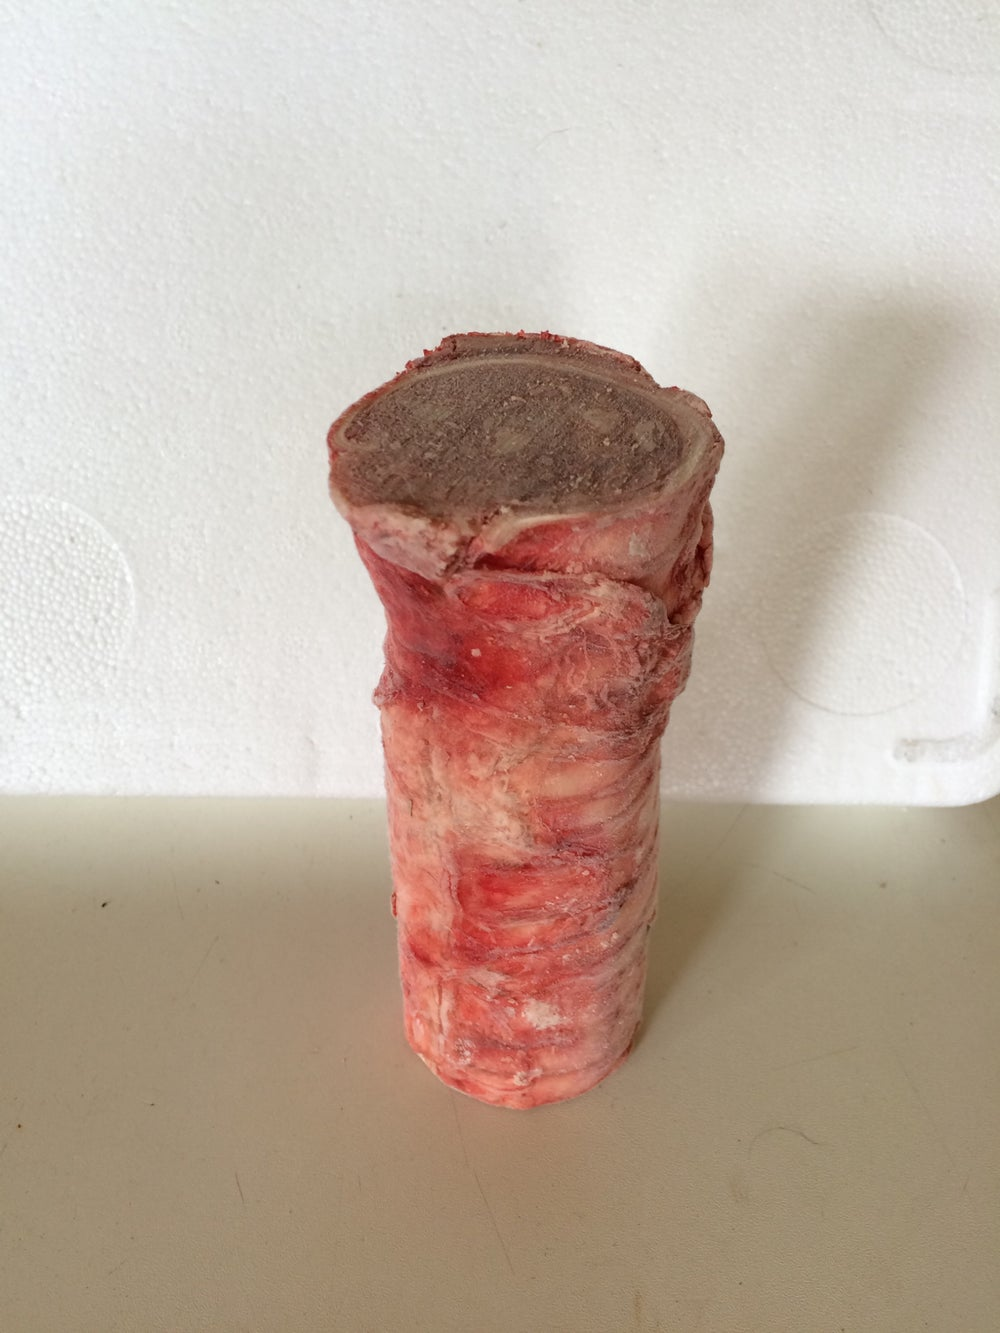 Image of Beef Throttle Stuffed with Chicken